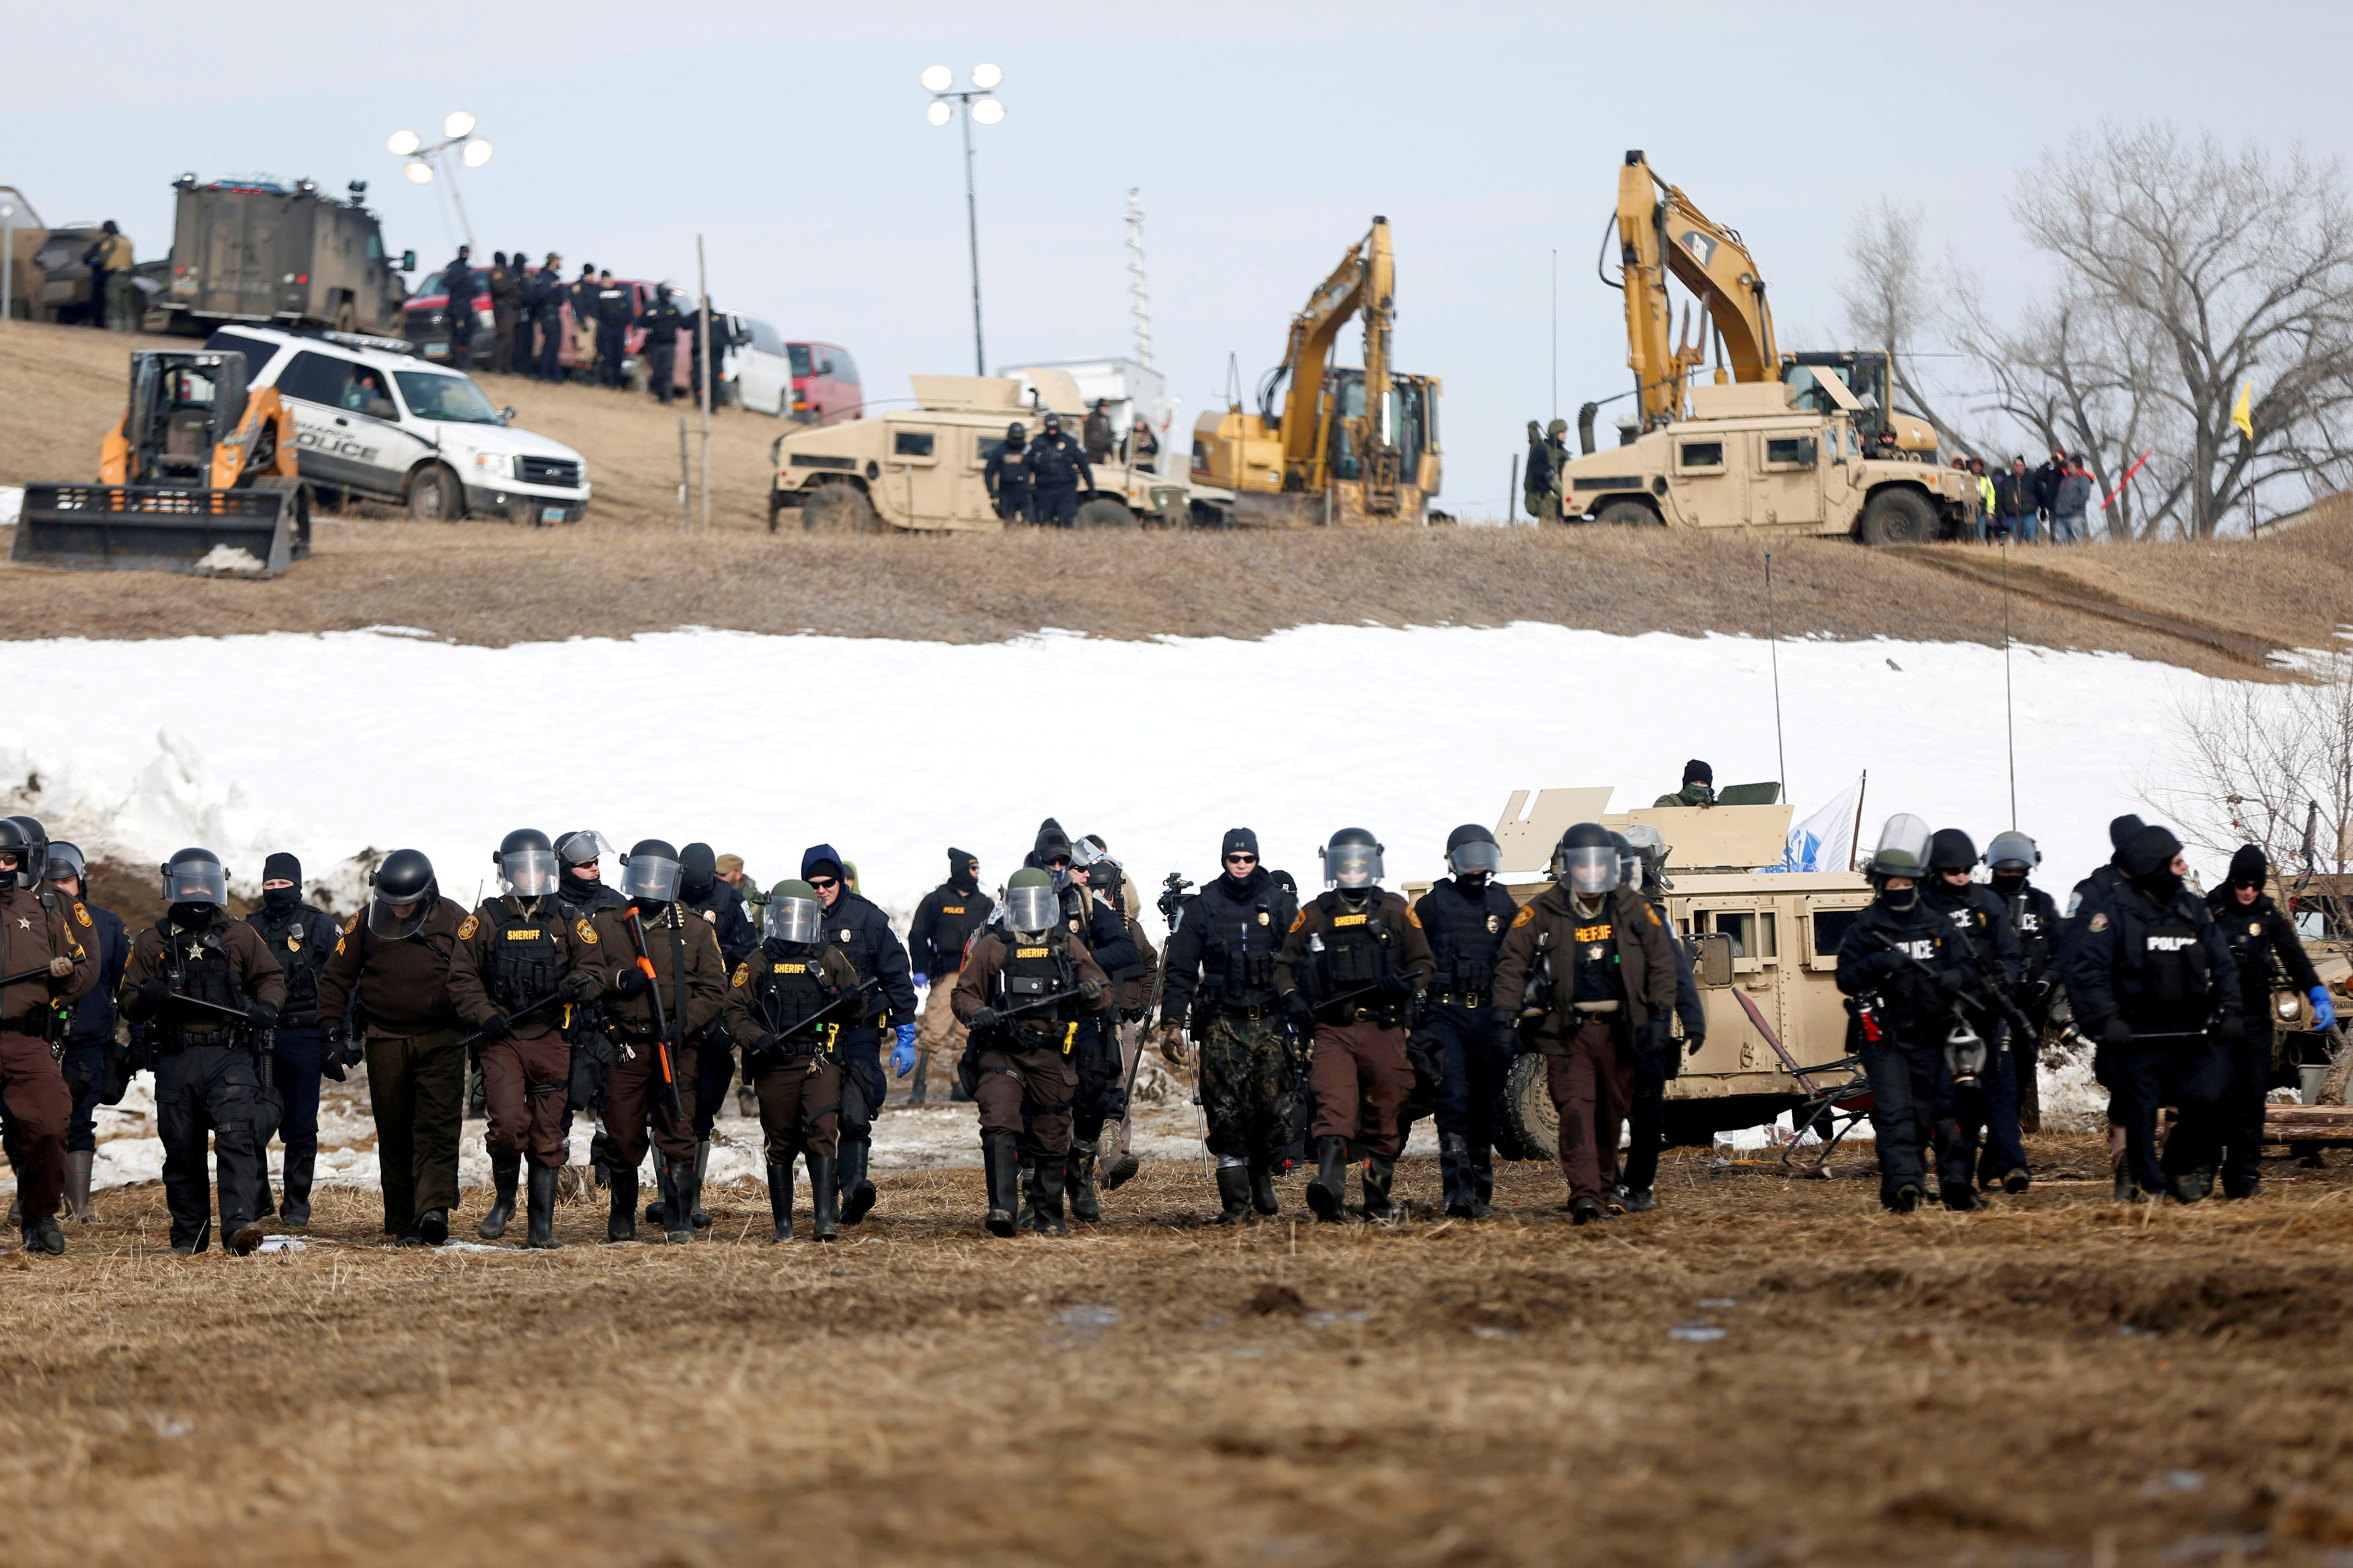 File photo: Law enforcement officers advance into the main opposition camp against the Dakota Access oil pipeline near Cannon Ball, North Dakota, U.S., February 23, 2017. REUTERS/Terray Sylvester